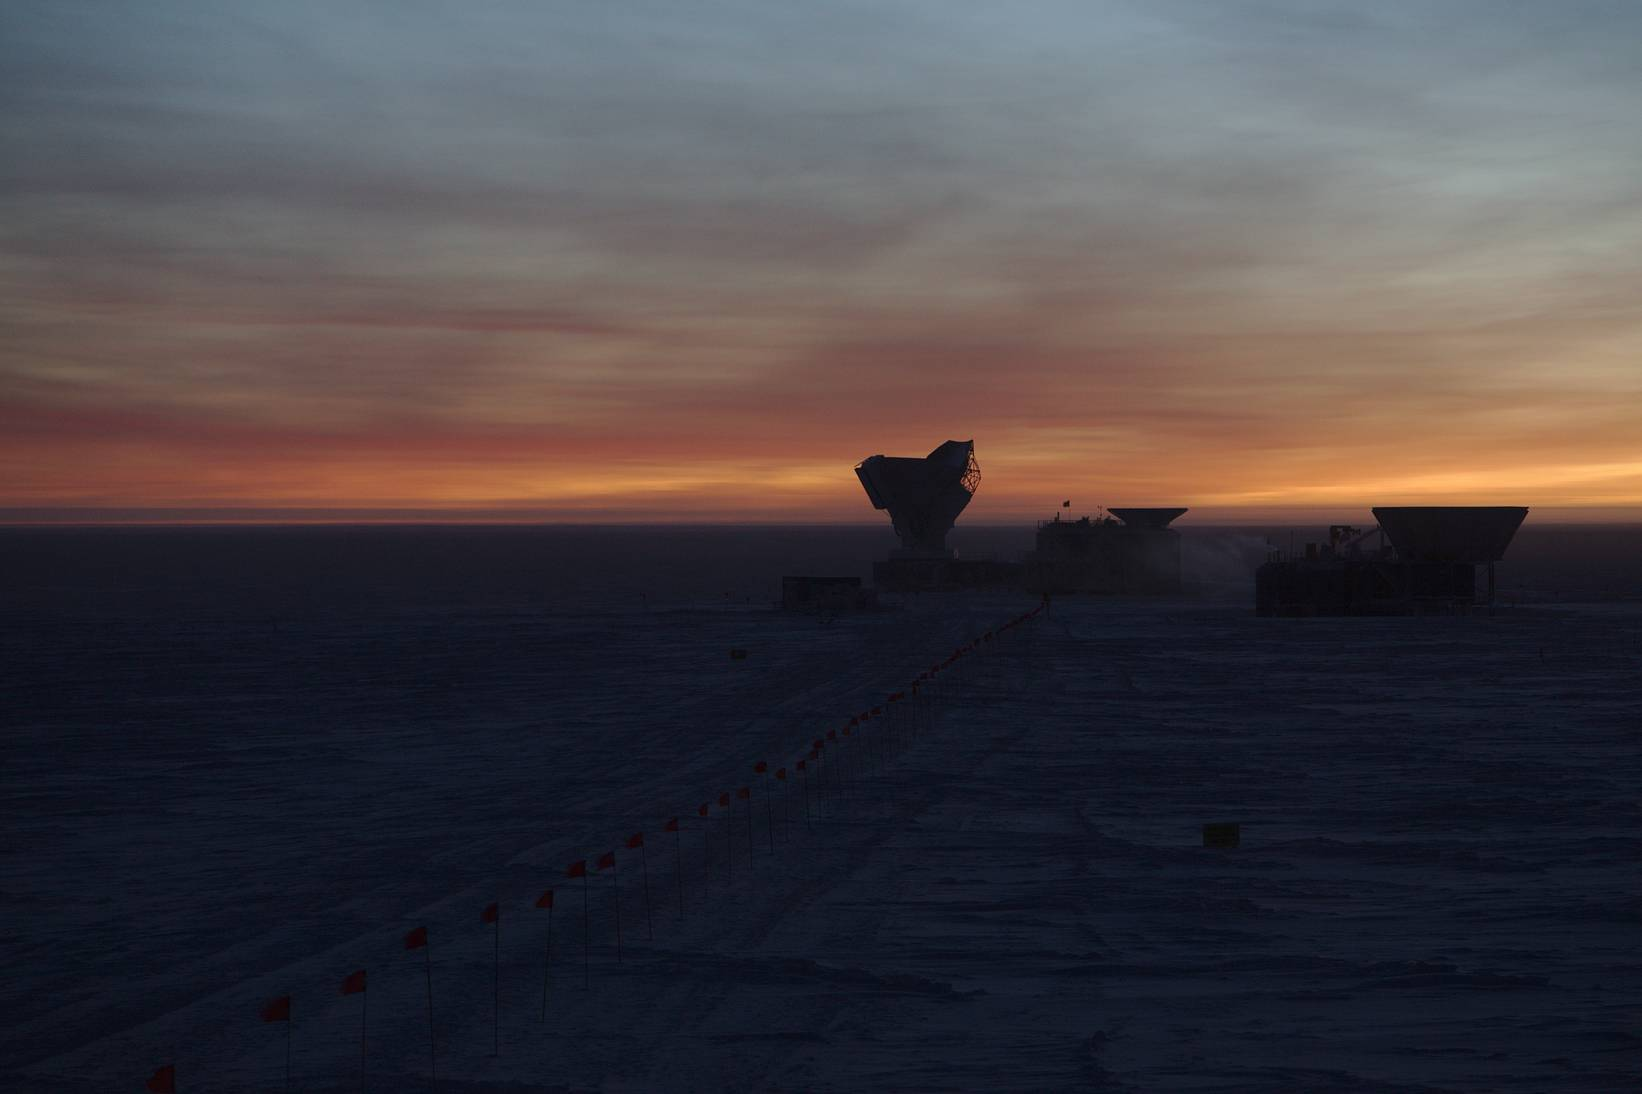 April 2017: The South Pole Telescope during EHT observations, 12 hours after the previous telescope picture. The last glimpses of the Sun behind the horizon cause the clouds in the sky to light up in hauntingly beautiful colours.